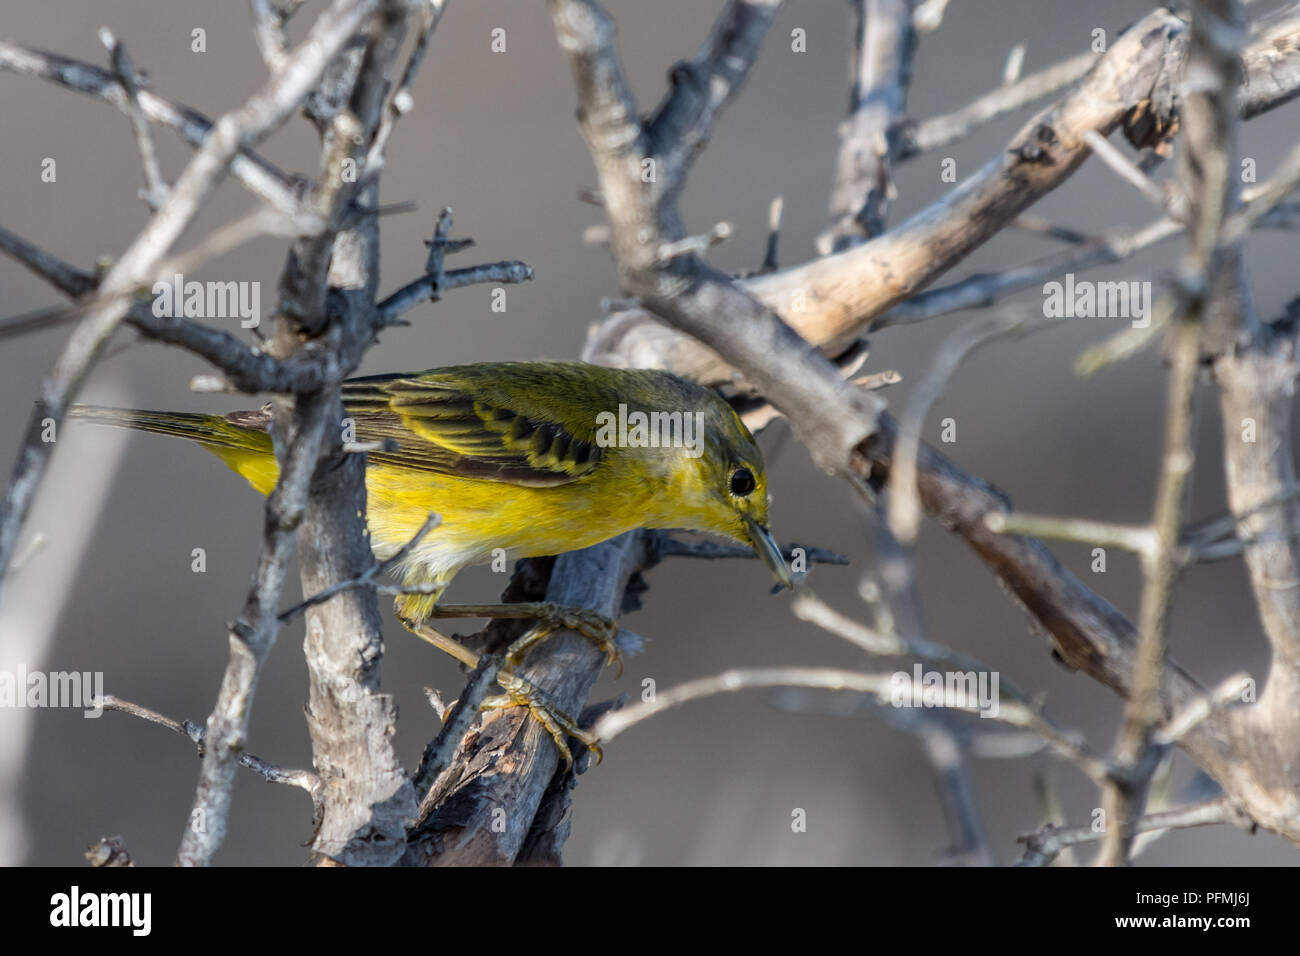 Galapagos Yellow Warbler (Dendroica petechia) searching for food in the Galapagos Islands, Ecuador. - Stock Image